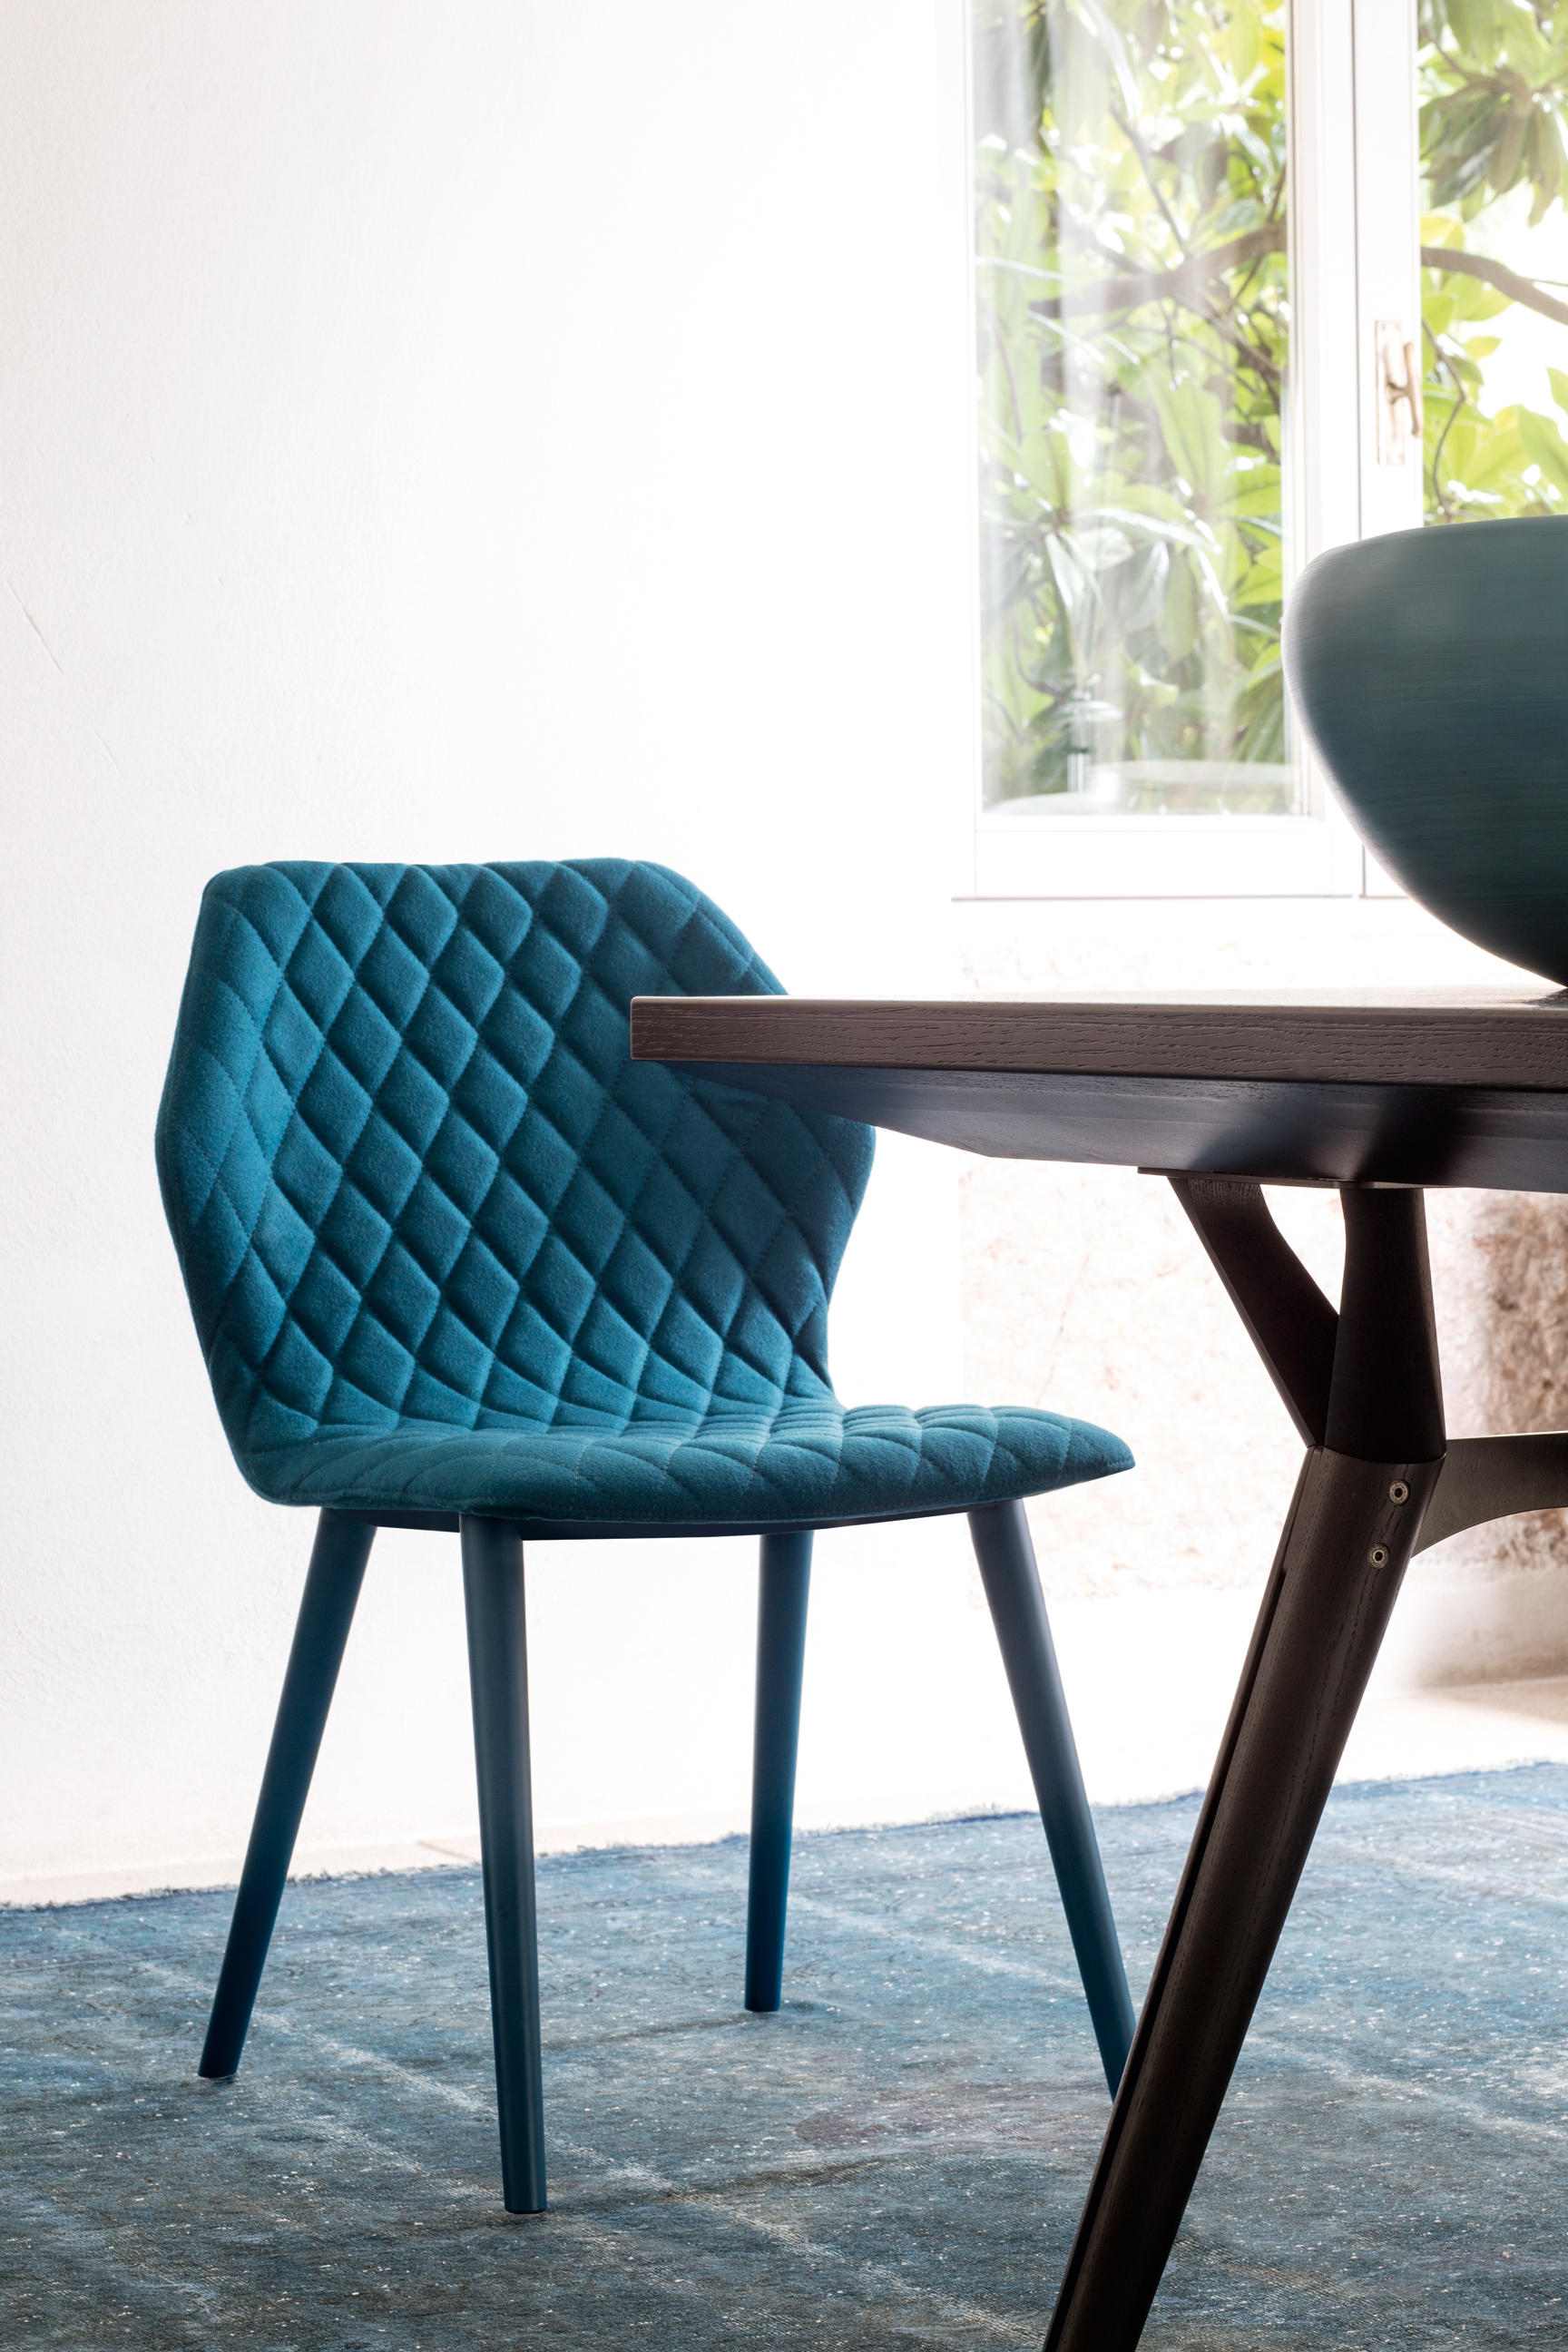 Ava Chair Chairs From Bross Architonic